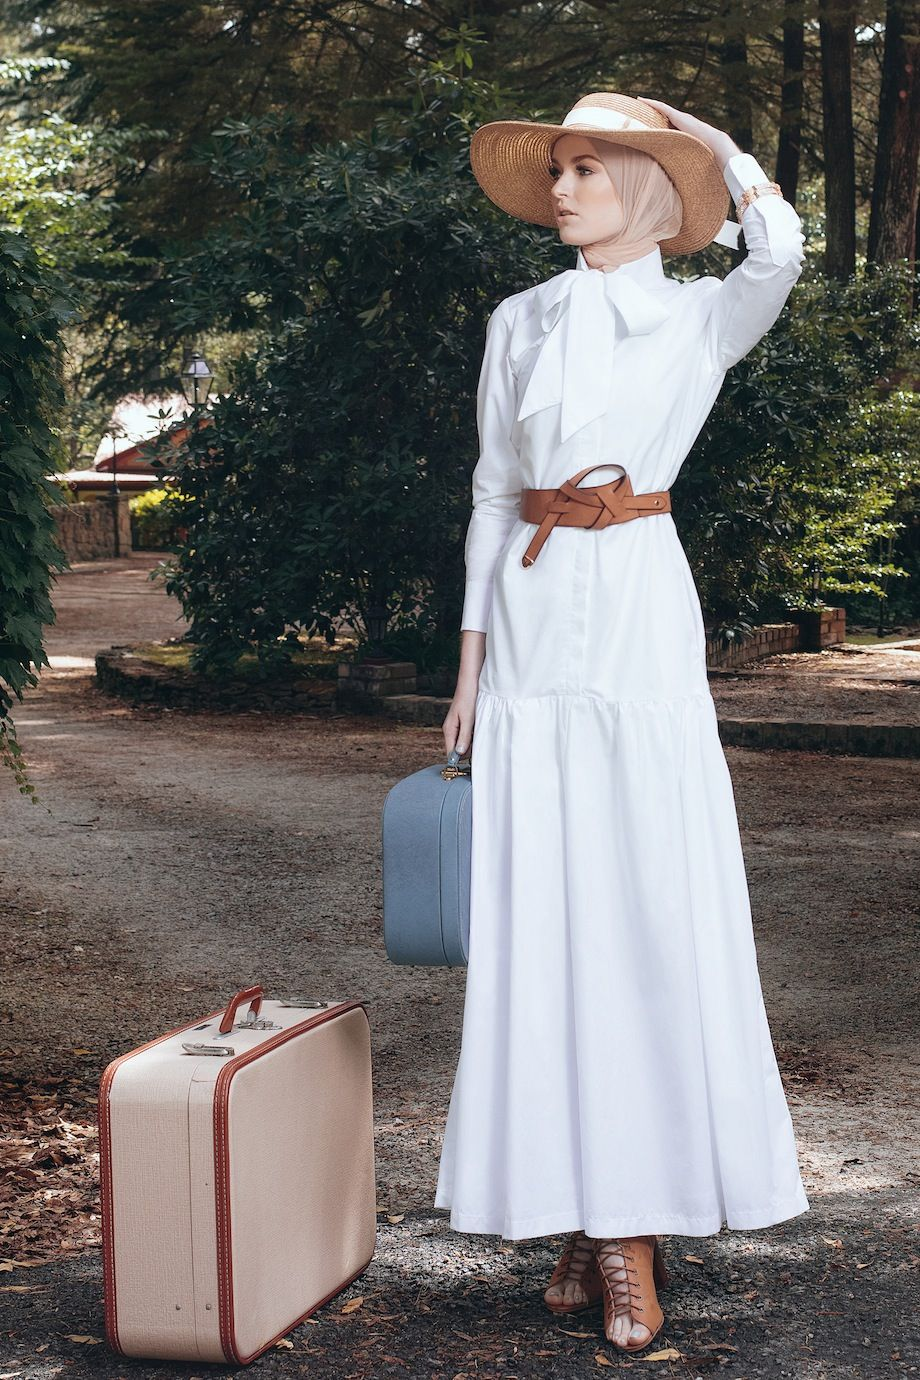 European Western Vintage Inspired Retro Hijab Fashion Diana Kotb Baroness Dress In White Hijab